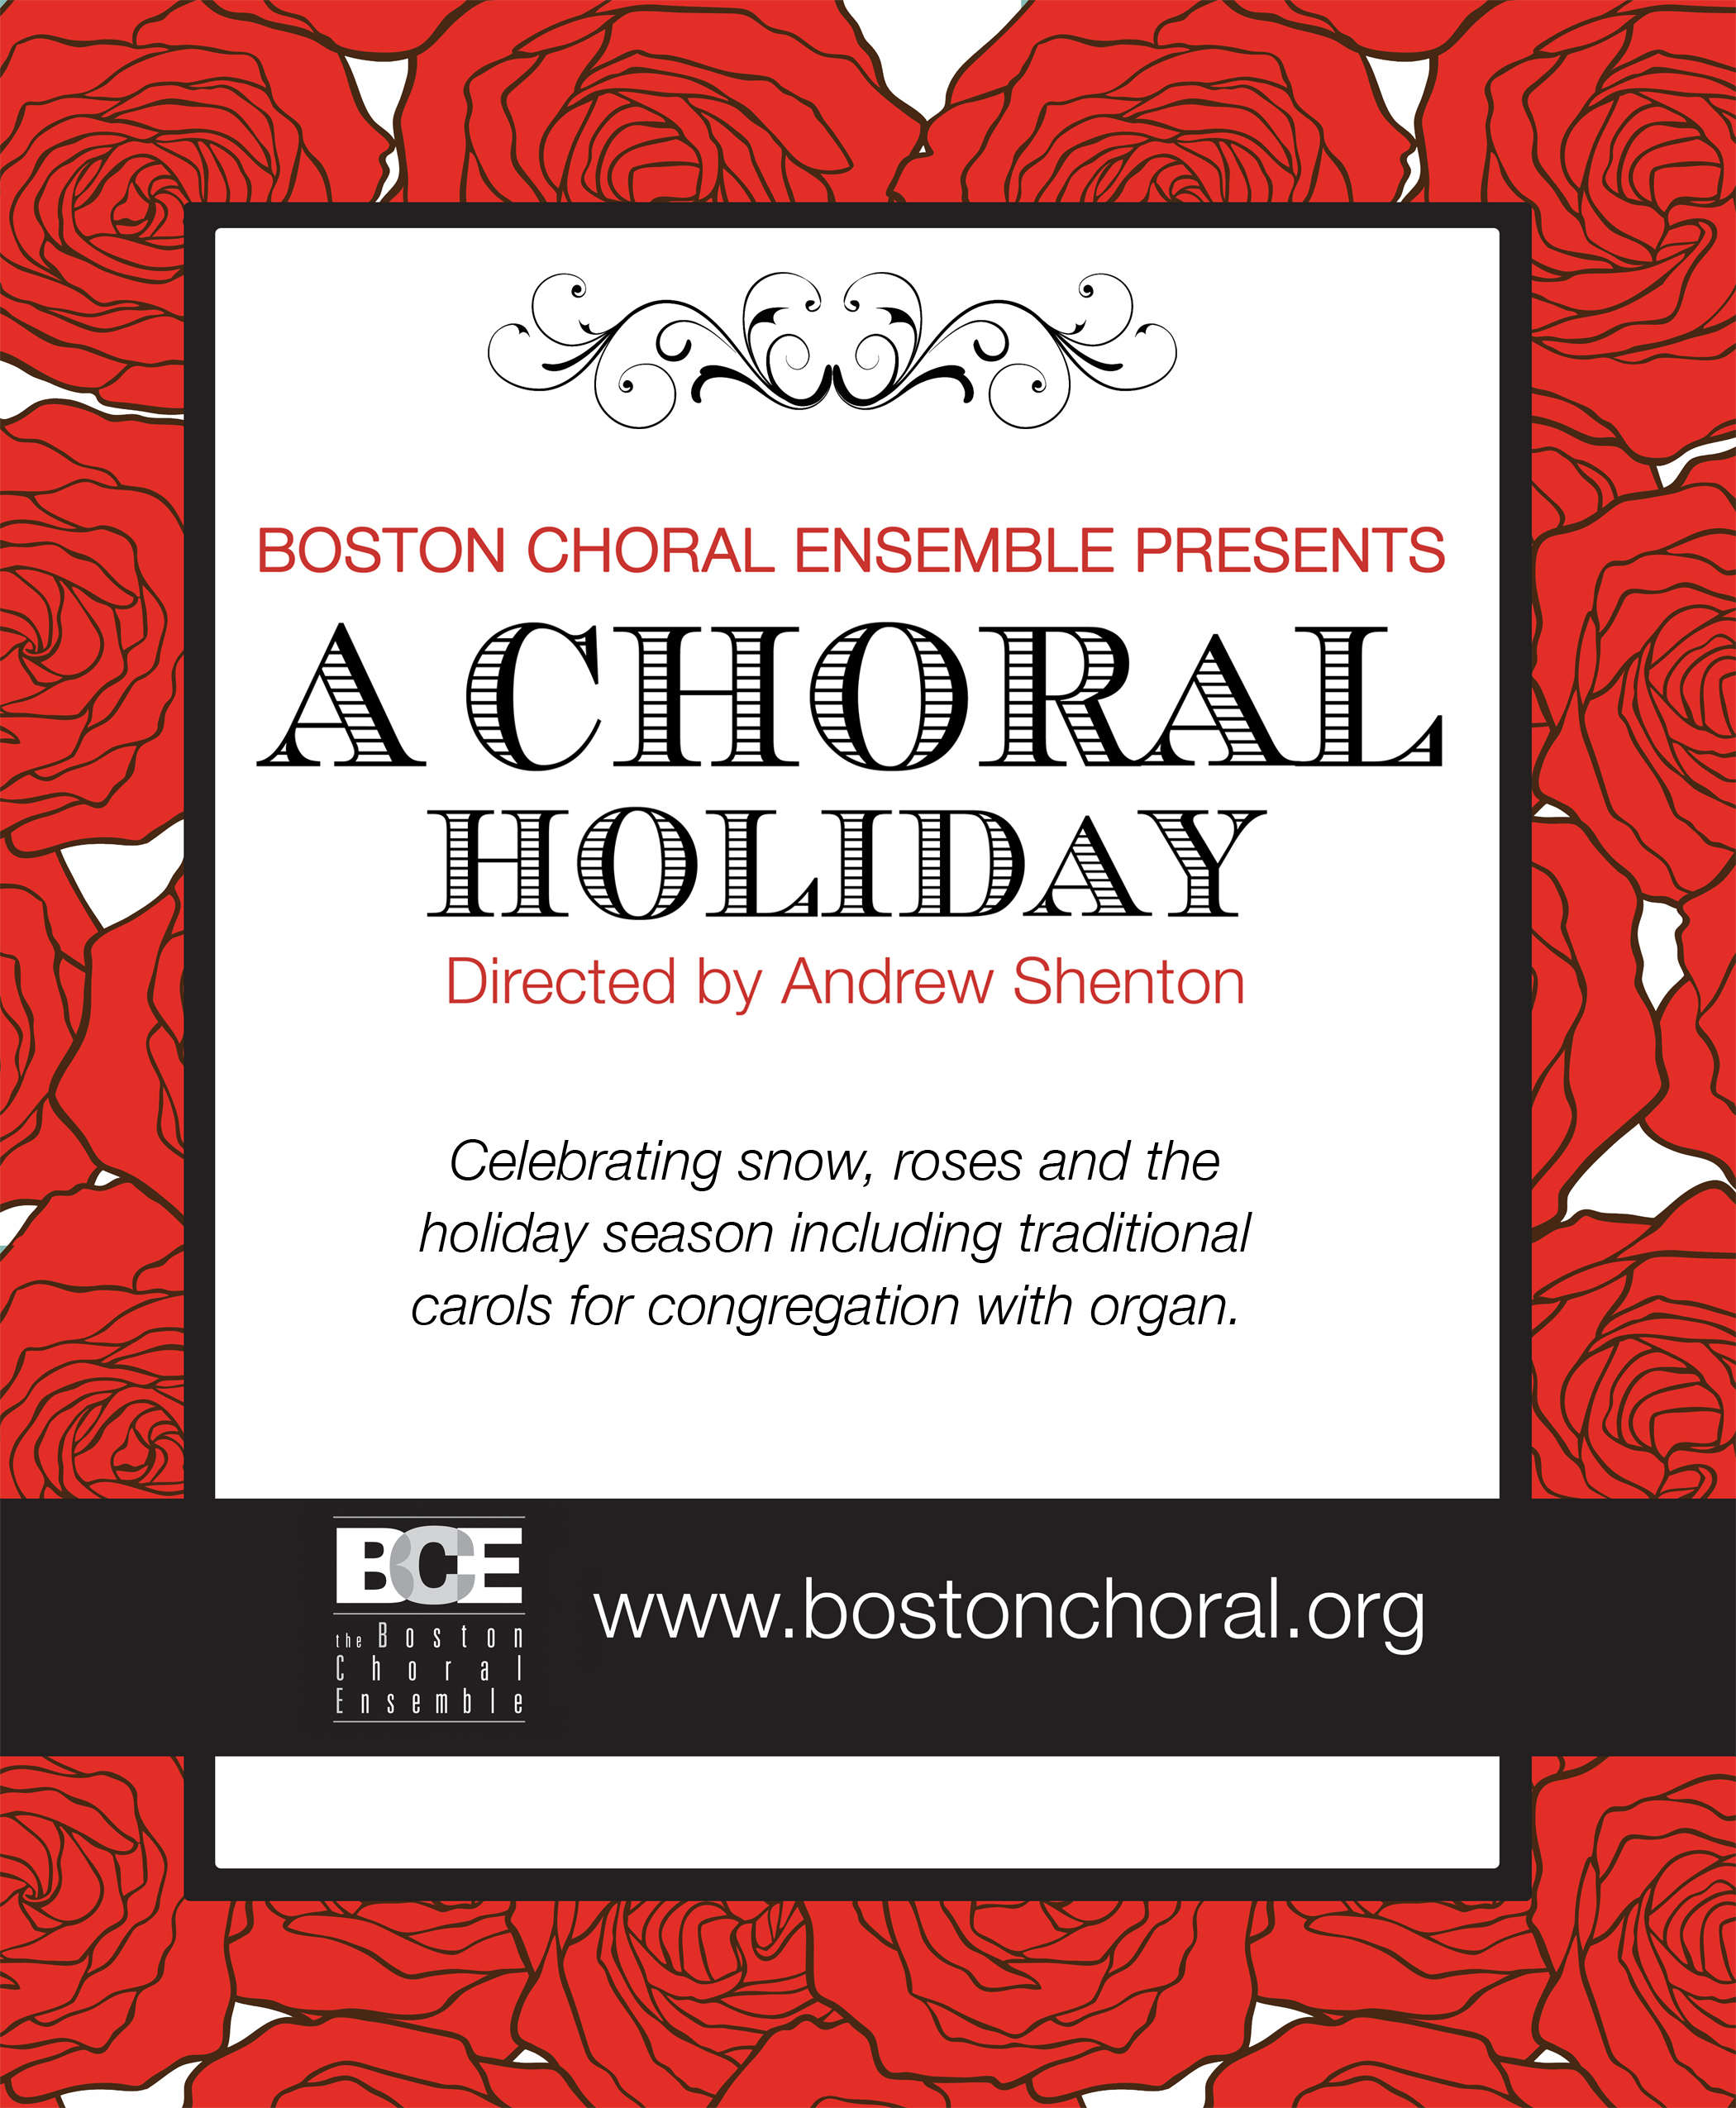 A Choral Holiday